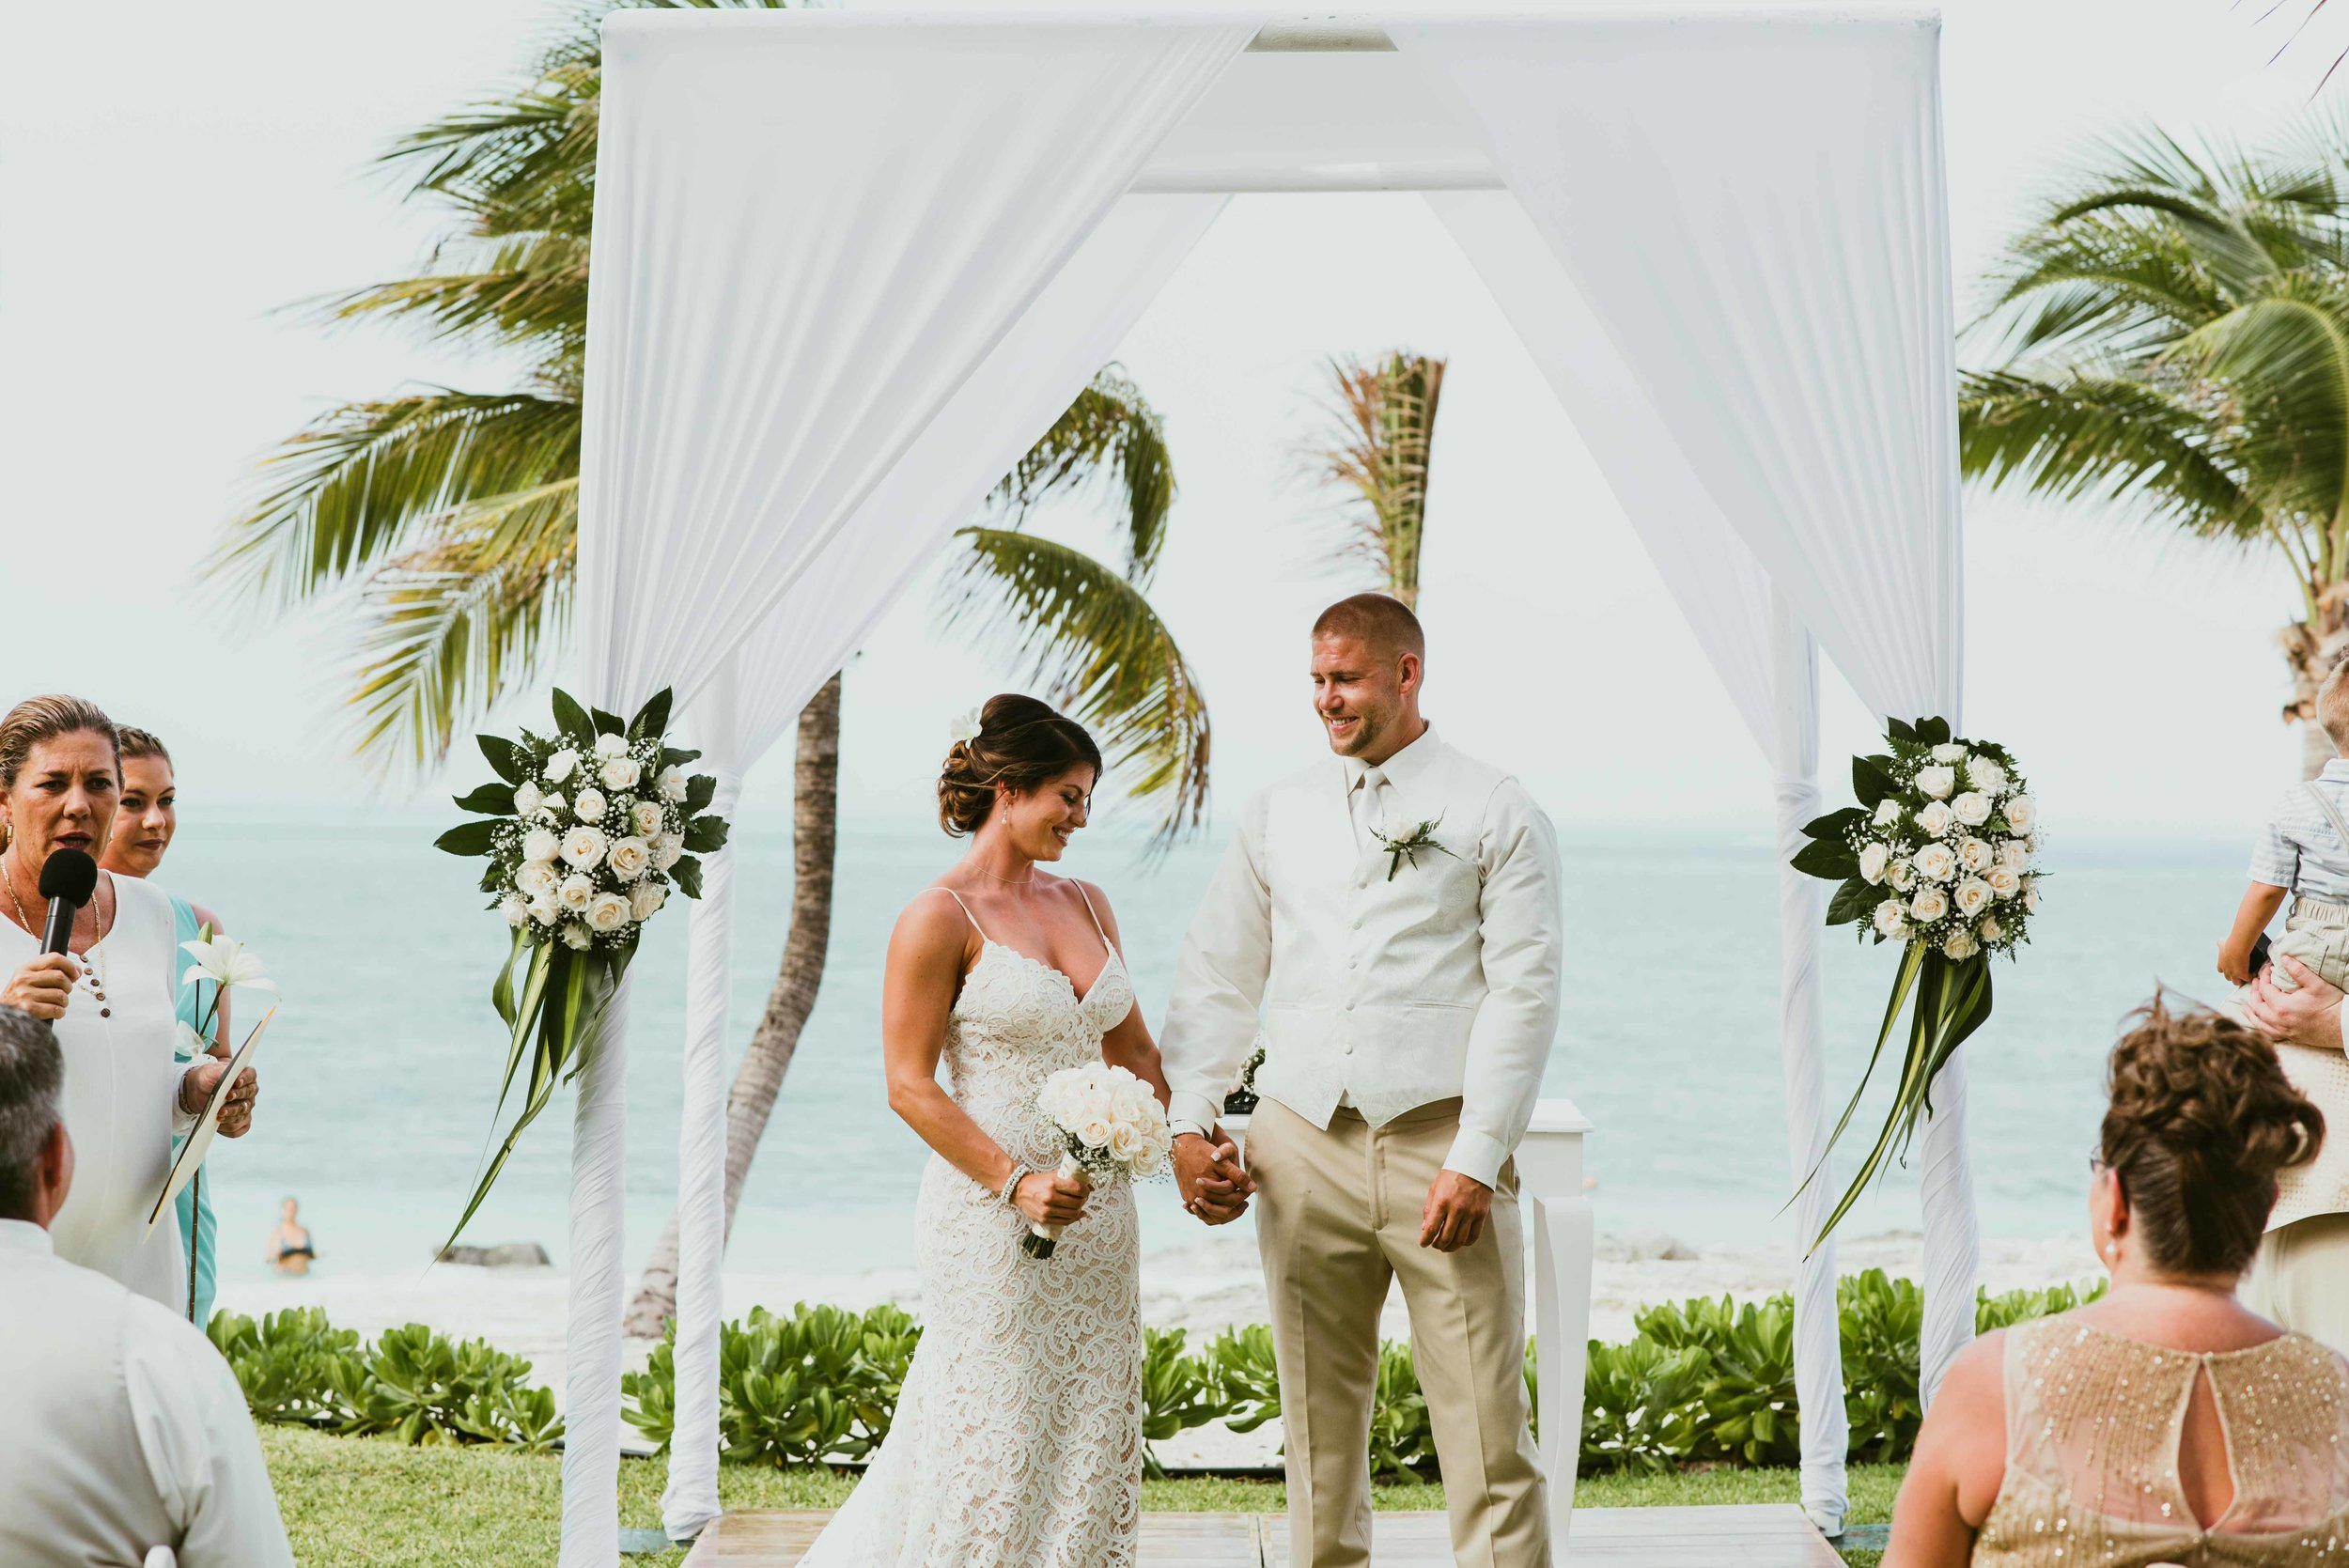 Beach-Wedding-Photography-Cancun-Elopement-Destination-Elopement-Photography-Destination-Beach-Wedding-+Costa-Rica-Wedding-Photography-Beach-Wedding-Photos-teresawoodhull-Cancun-Elopement-Beach-Wedding-+Sunset-Beach-Wedding-Fotografia-de-bodas-Nicoya-Peninsula-Elopement-Photographer-Santa-Teresa-Elopement-Photographer-Adventure-elopement-photographer-Santa-Teresa-Wedding-Photographer-Adventure-Wedding-Boda-playa-santa-teresa-Adventure-Wedding-Photography-Adventure-Wedding-Photographer-Beach-Elopement-Beach-Elopement-Photos-maddie-mae-Beach-Elopement-Photographer-Destination-Elopement-Photographer-Sunset-Beach-Elopement-Mexico-wedding-photographer-cabo-wedding-photographer-mexico-wedding-mexico-destination-wedding-cancun-destination-wedding-cancun-elopement-photographer-playa-del-carmen-wedding-playa-del-carmen-destination-wedding-photographer-playa-del-carmen-wedding-photography-Nicoya-Peninsula-Wedding-Photography-Nicoya-Peninsula-Wedding-Photographer-Nicoya-Peninsula-Elopement-Photography-tony-julia-holding-hands-ceremony